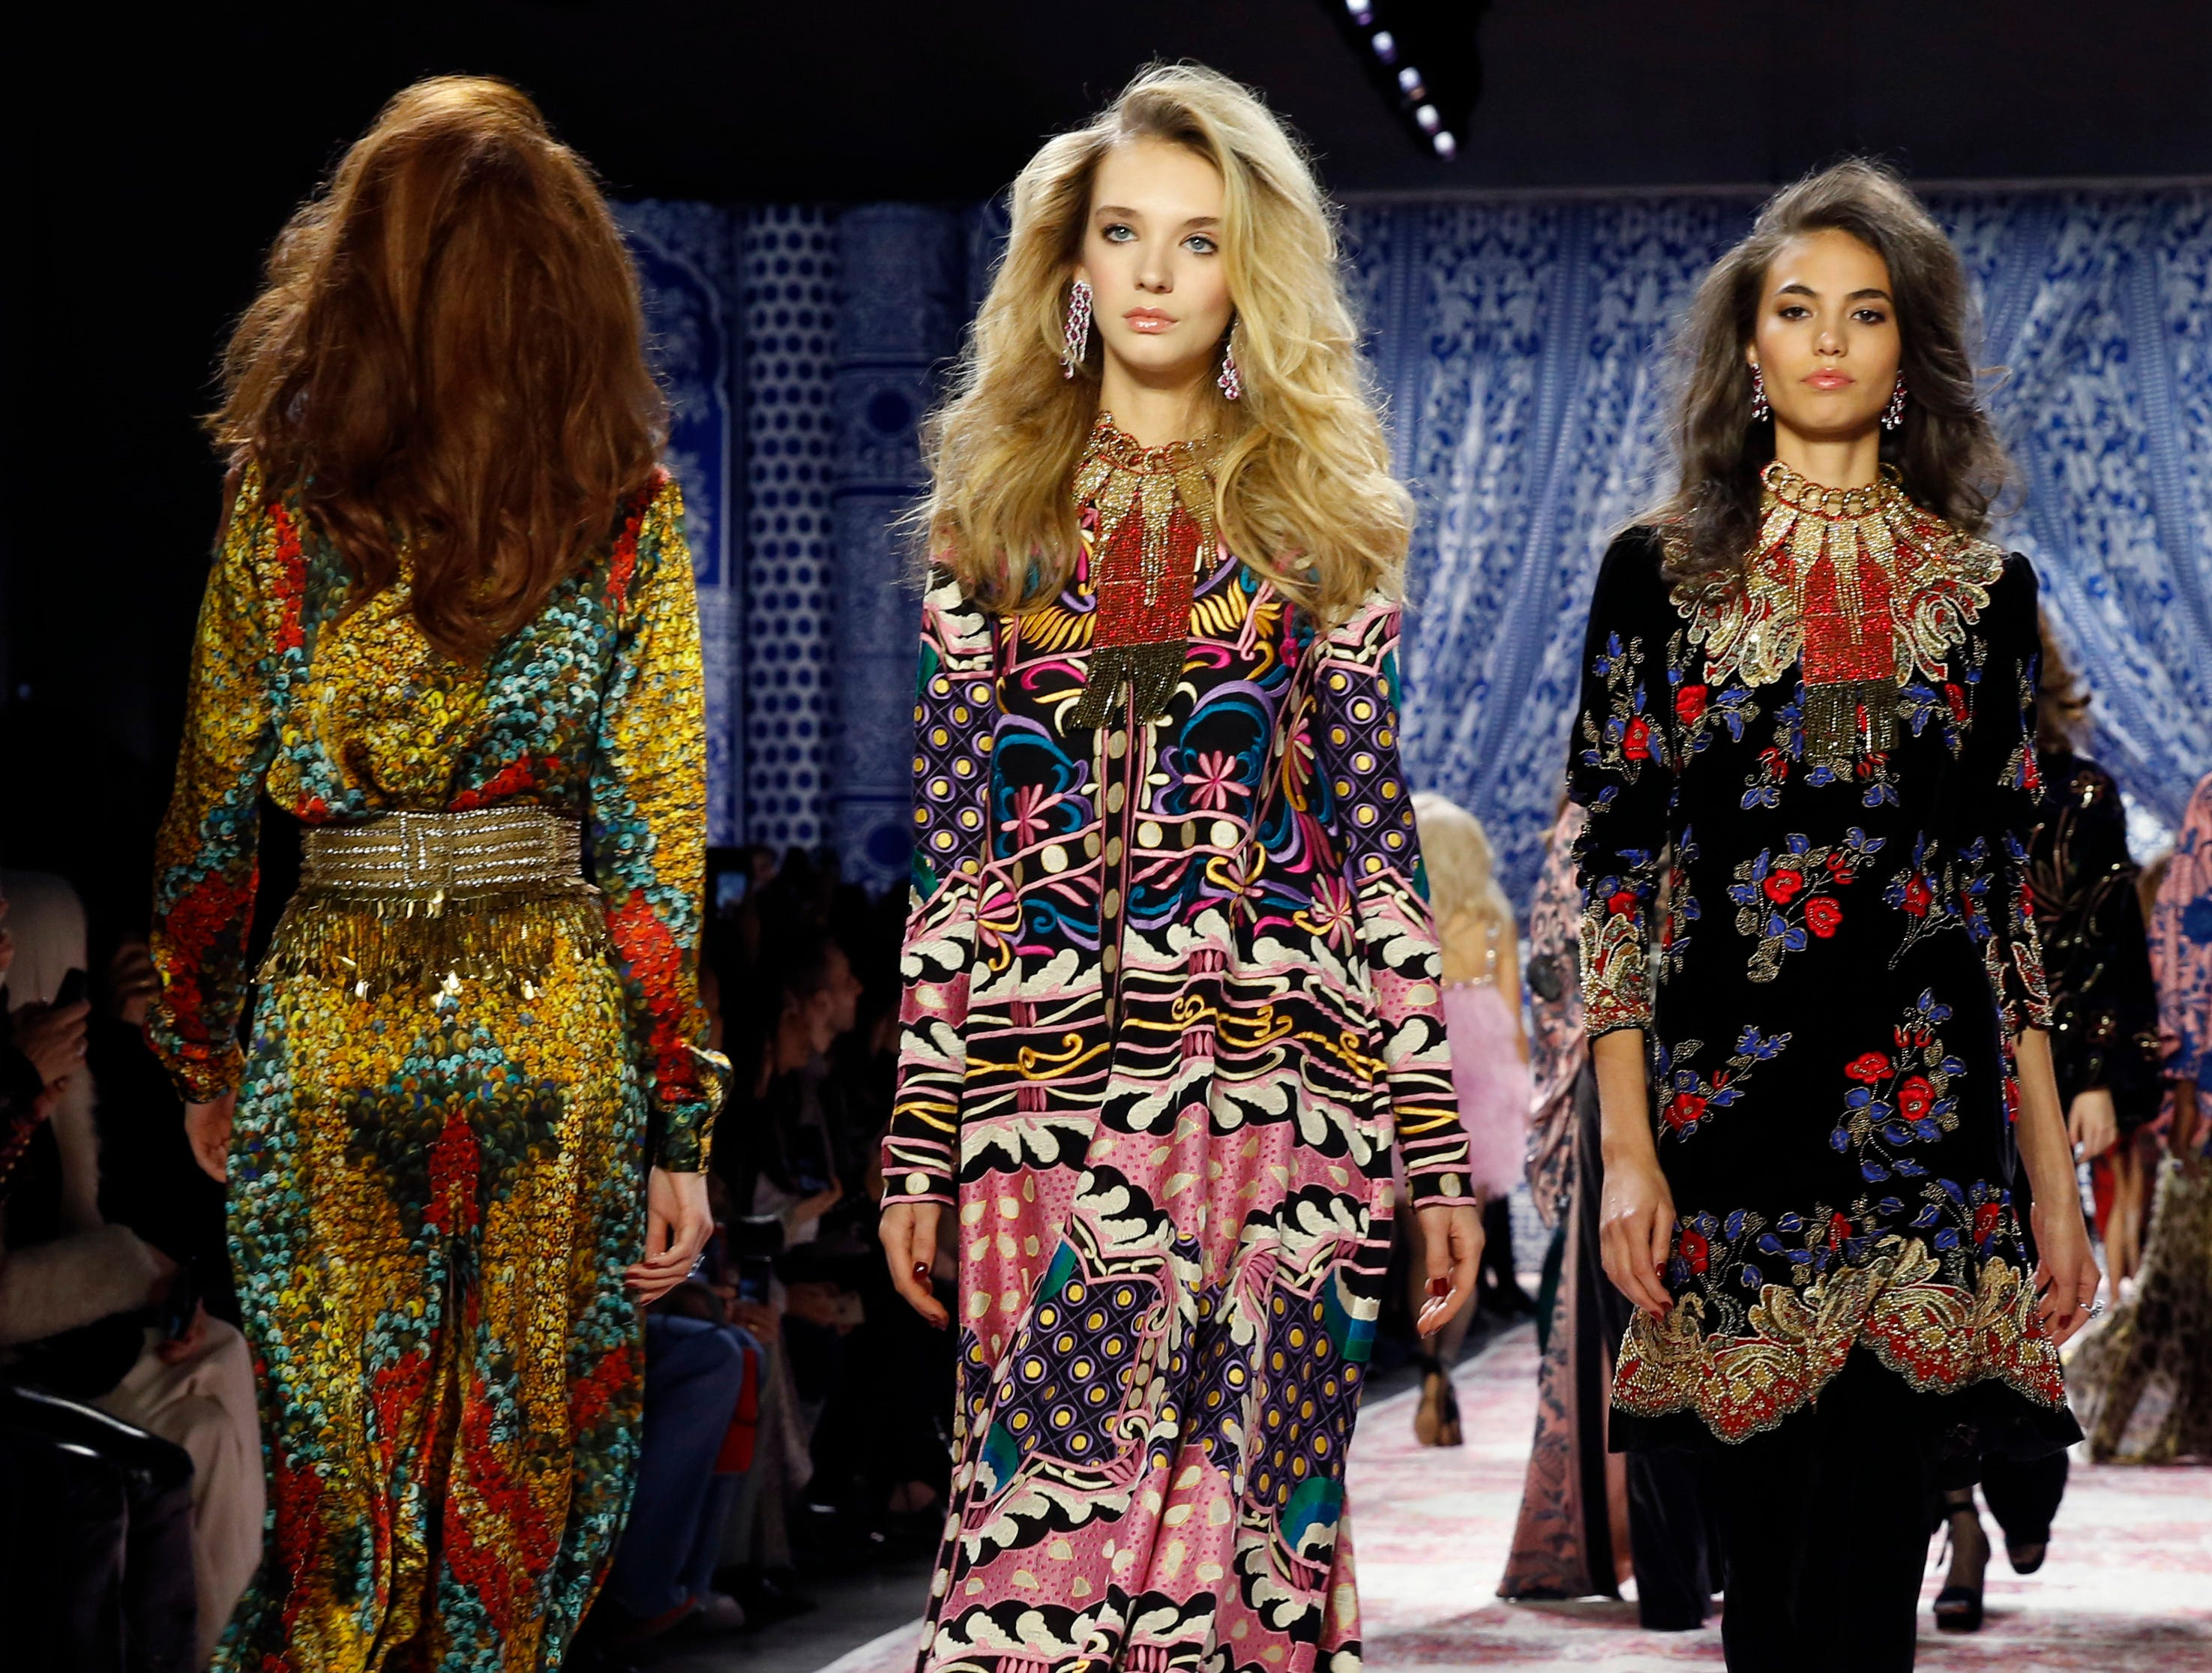 The latest fashion creations from Naeem Khan are modeled during New York Fashion Week, Tuesday, Feb. 12, 2019, in New York. (AP Photo/Kathy Willens) ORG XMIT: OTKKW109